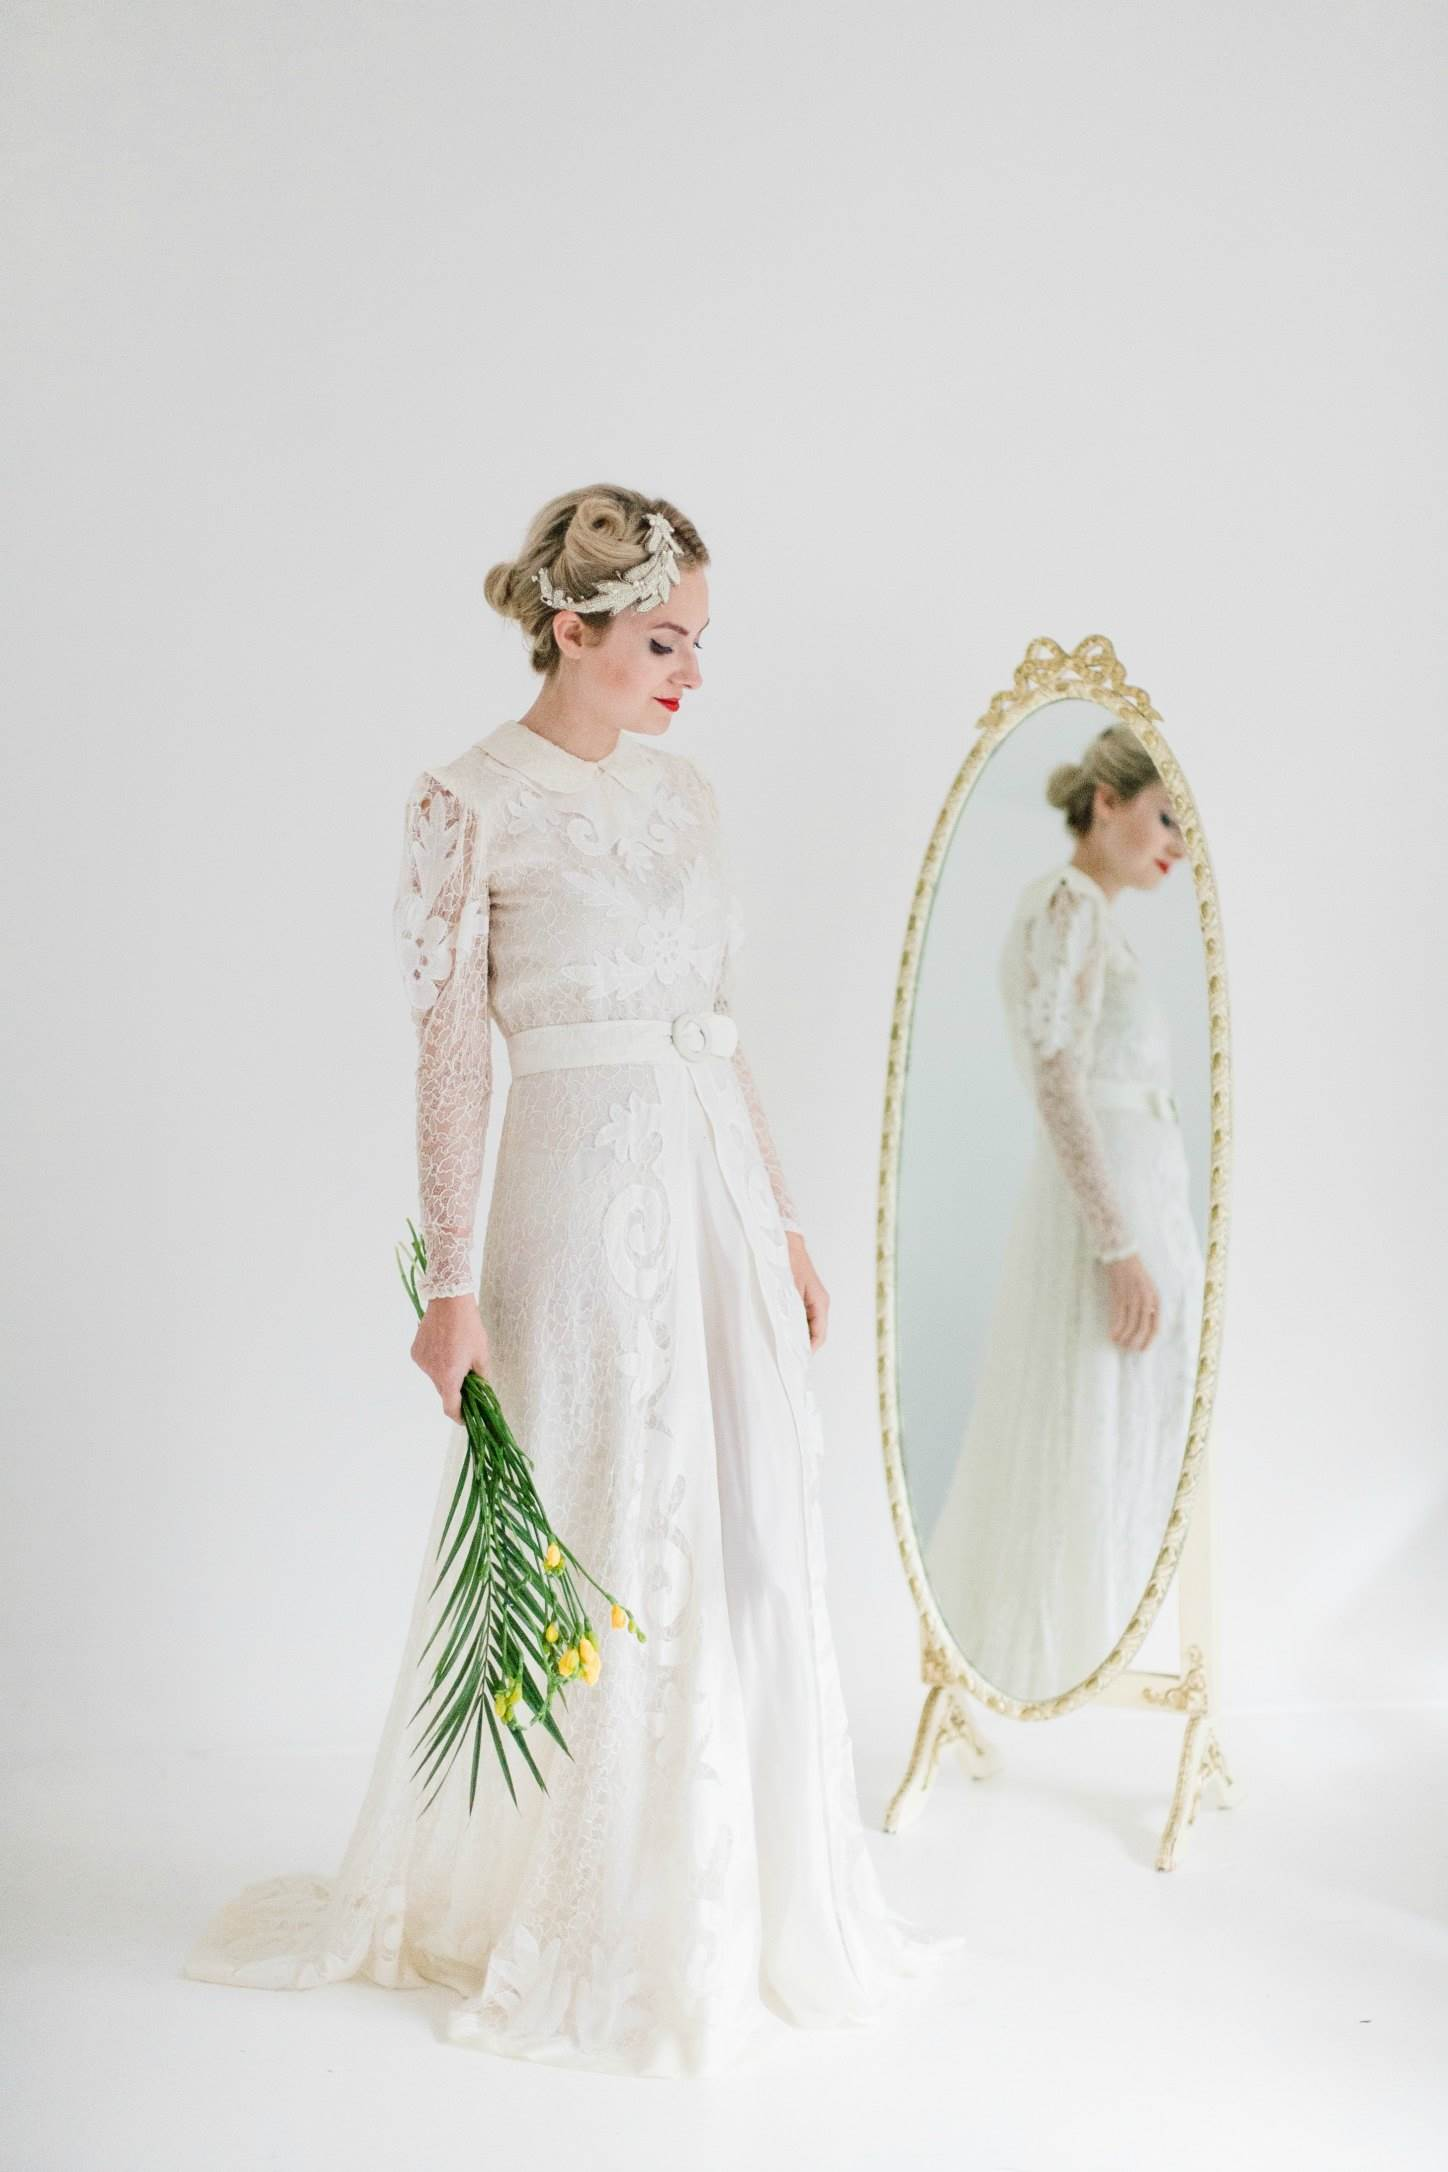 50 years of vintage wedding dresses photos by Claire Macintyre 1940s